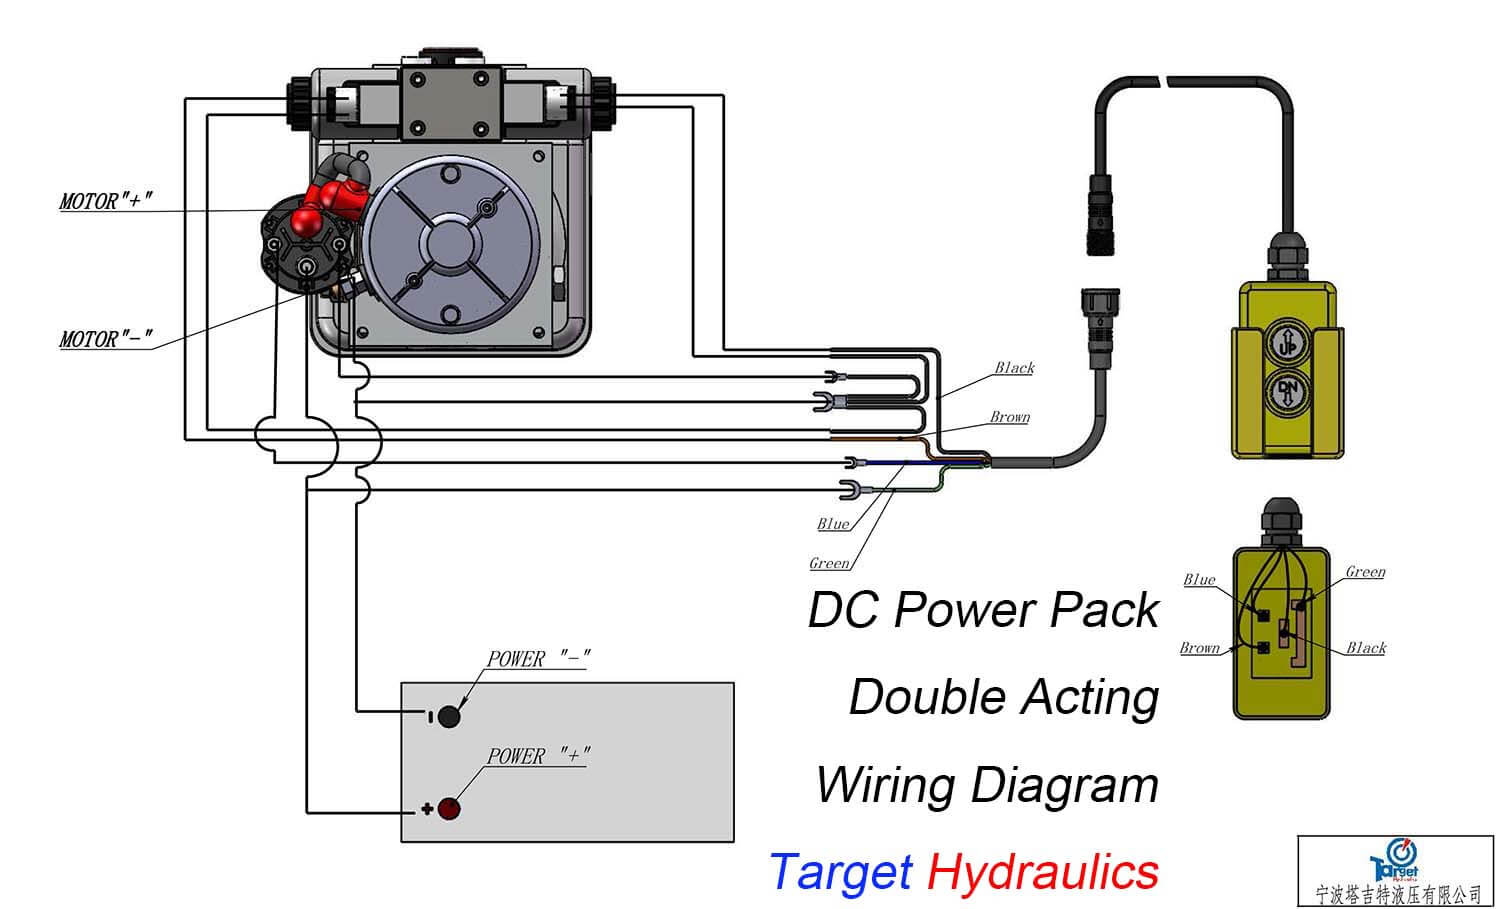 how to wire hydraulic power pack power unit diagram design rh target hydraulics com A O. Smith Well Pump Parts Diagram Diagram of Pool Pump Connections